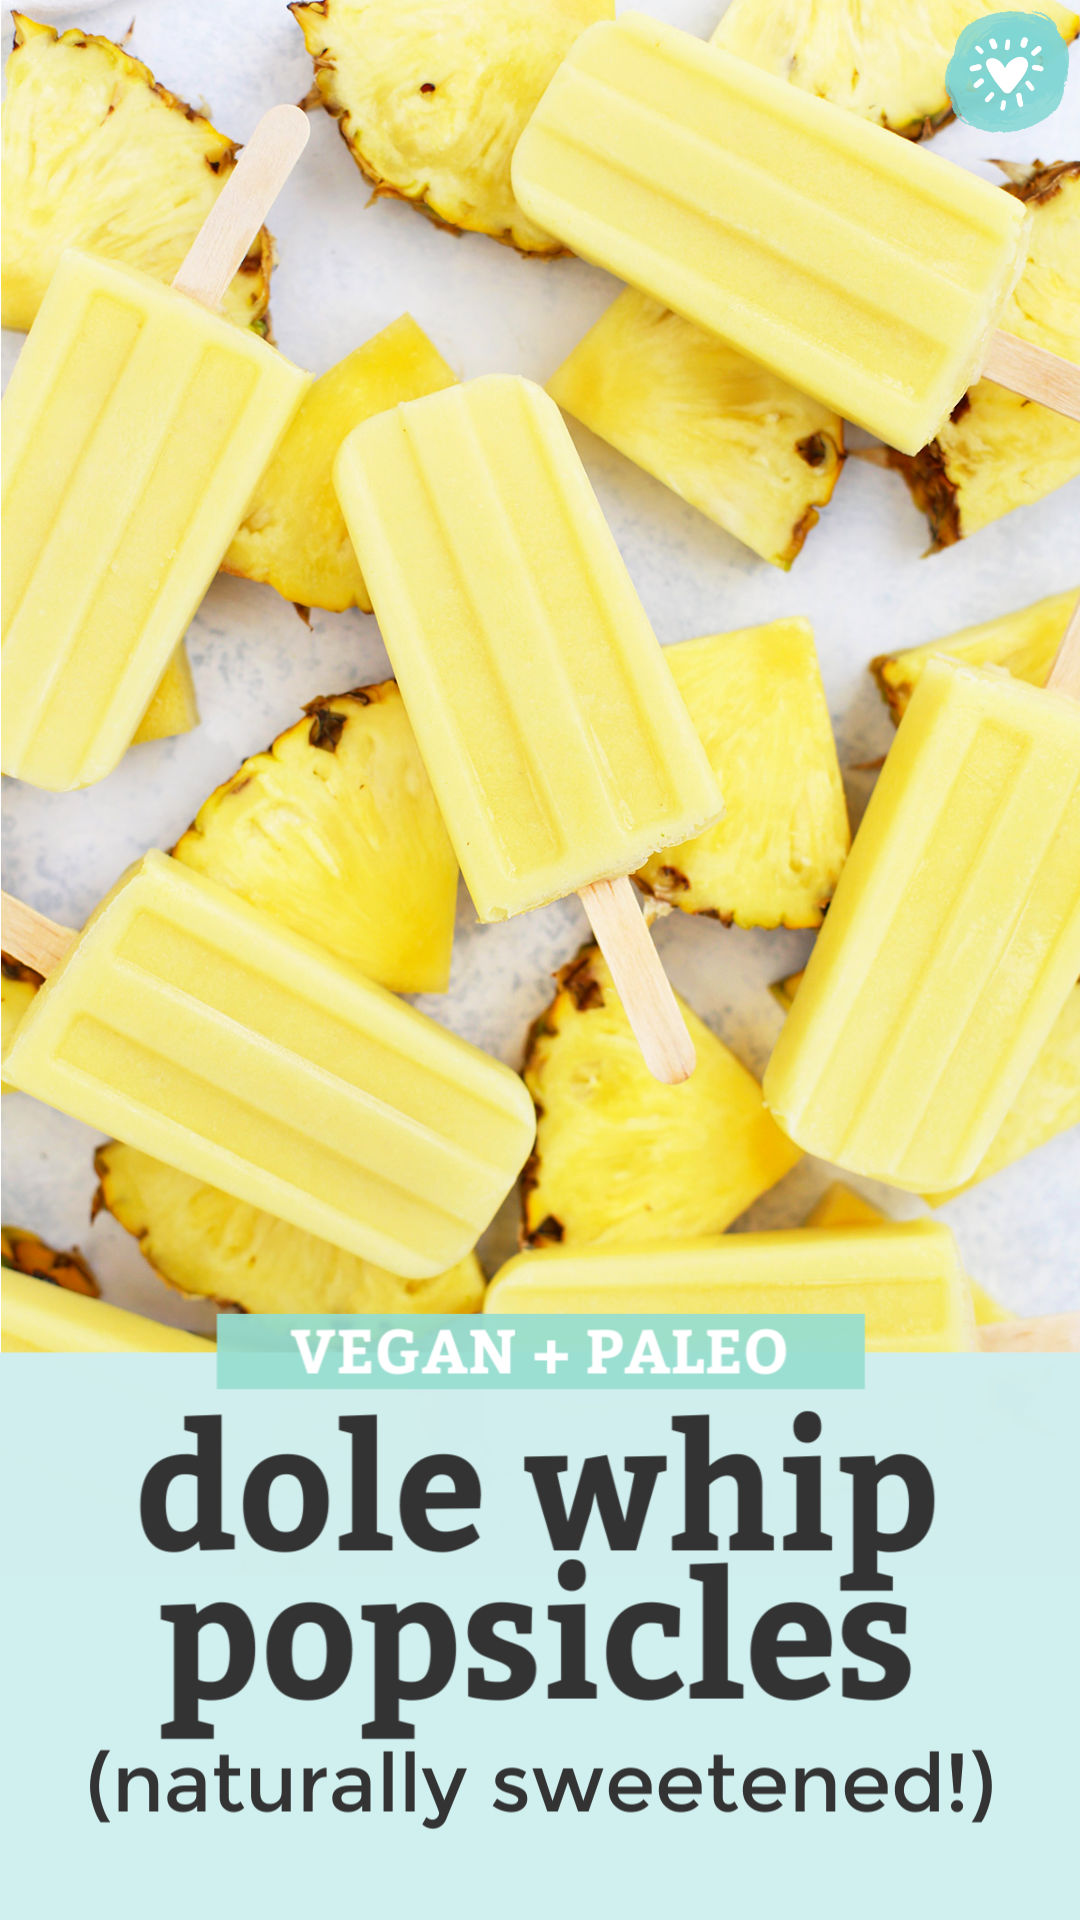 Dole Whip Popsicles from One Lovely Life